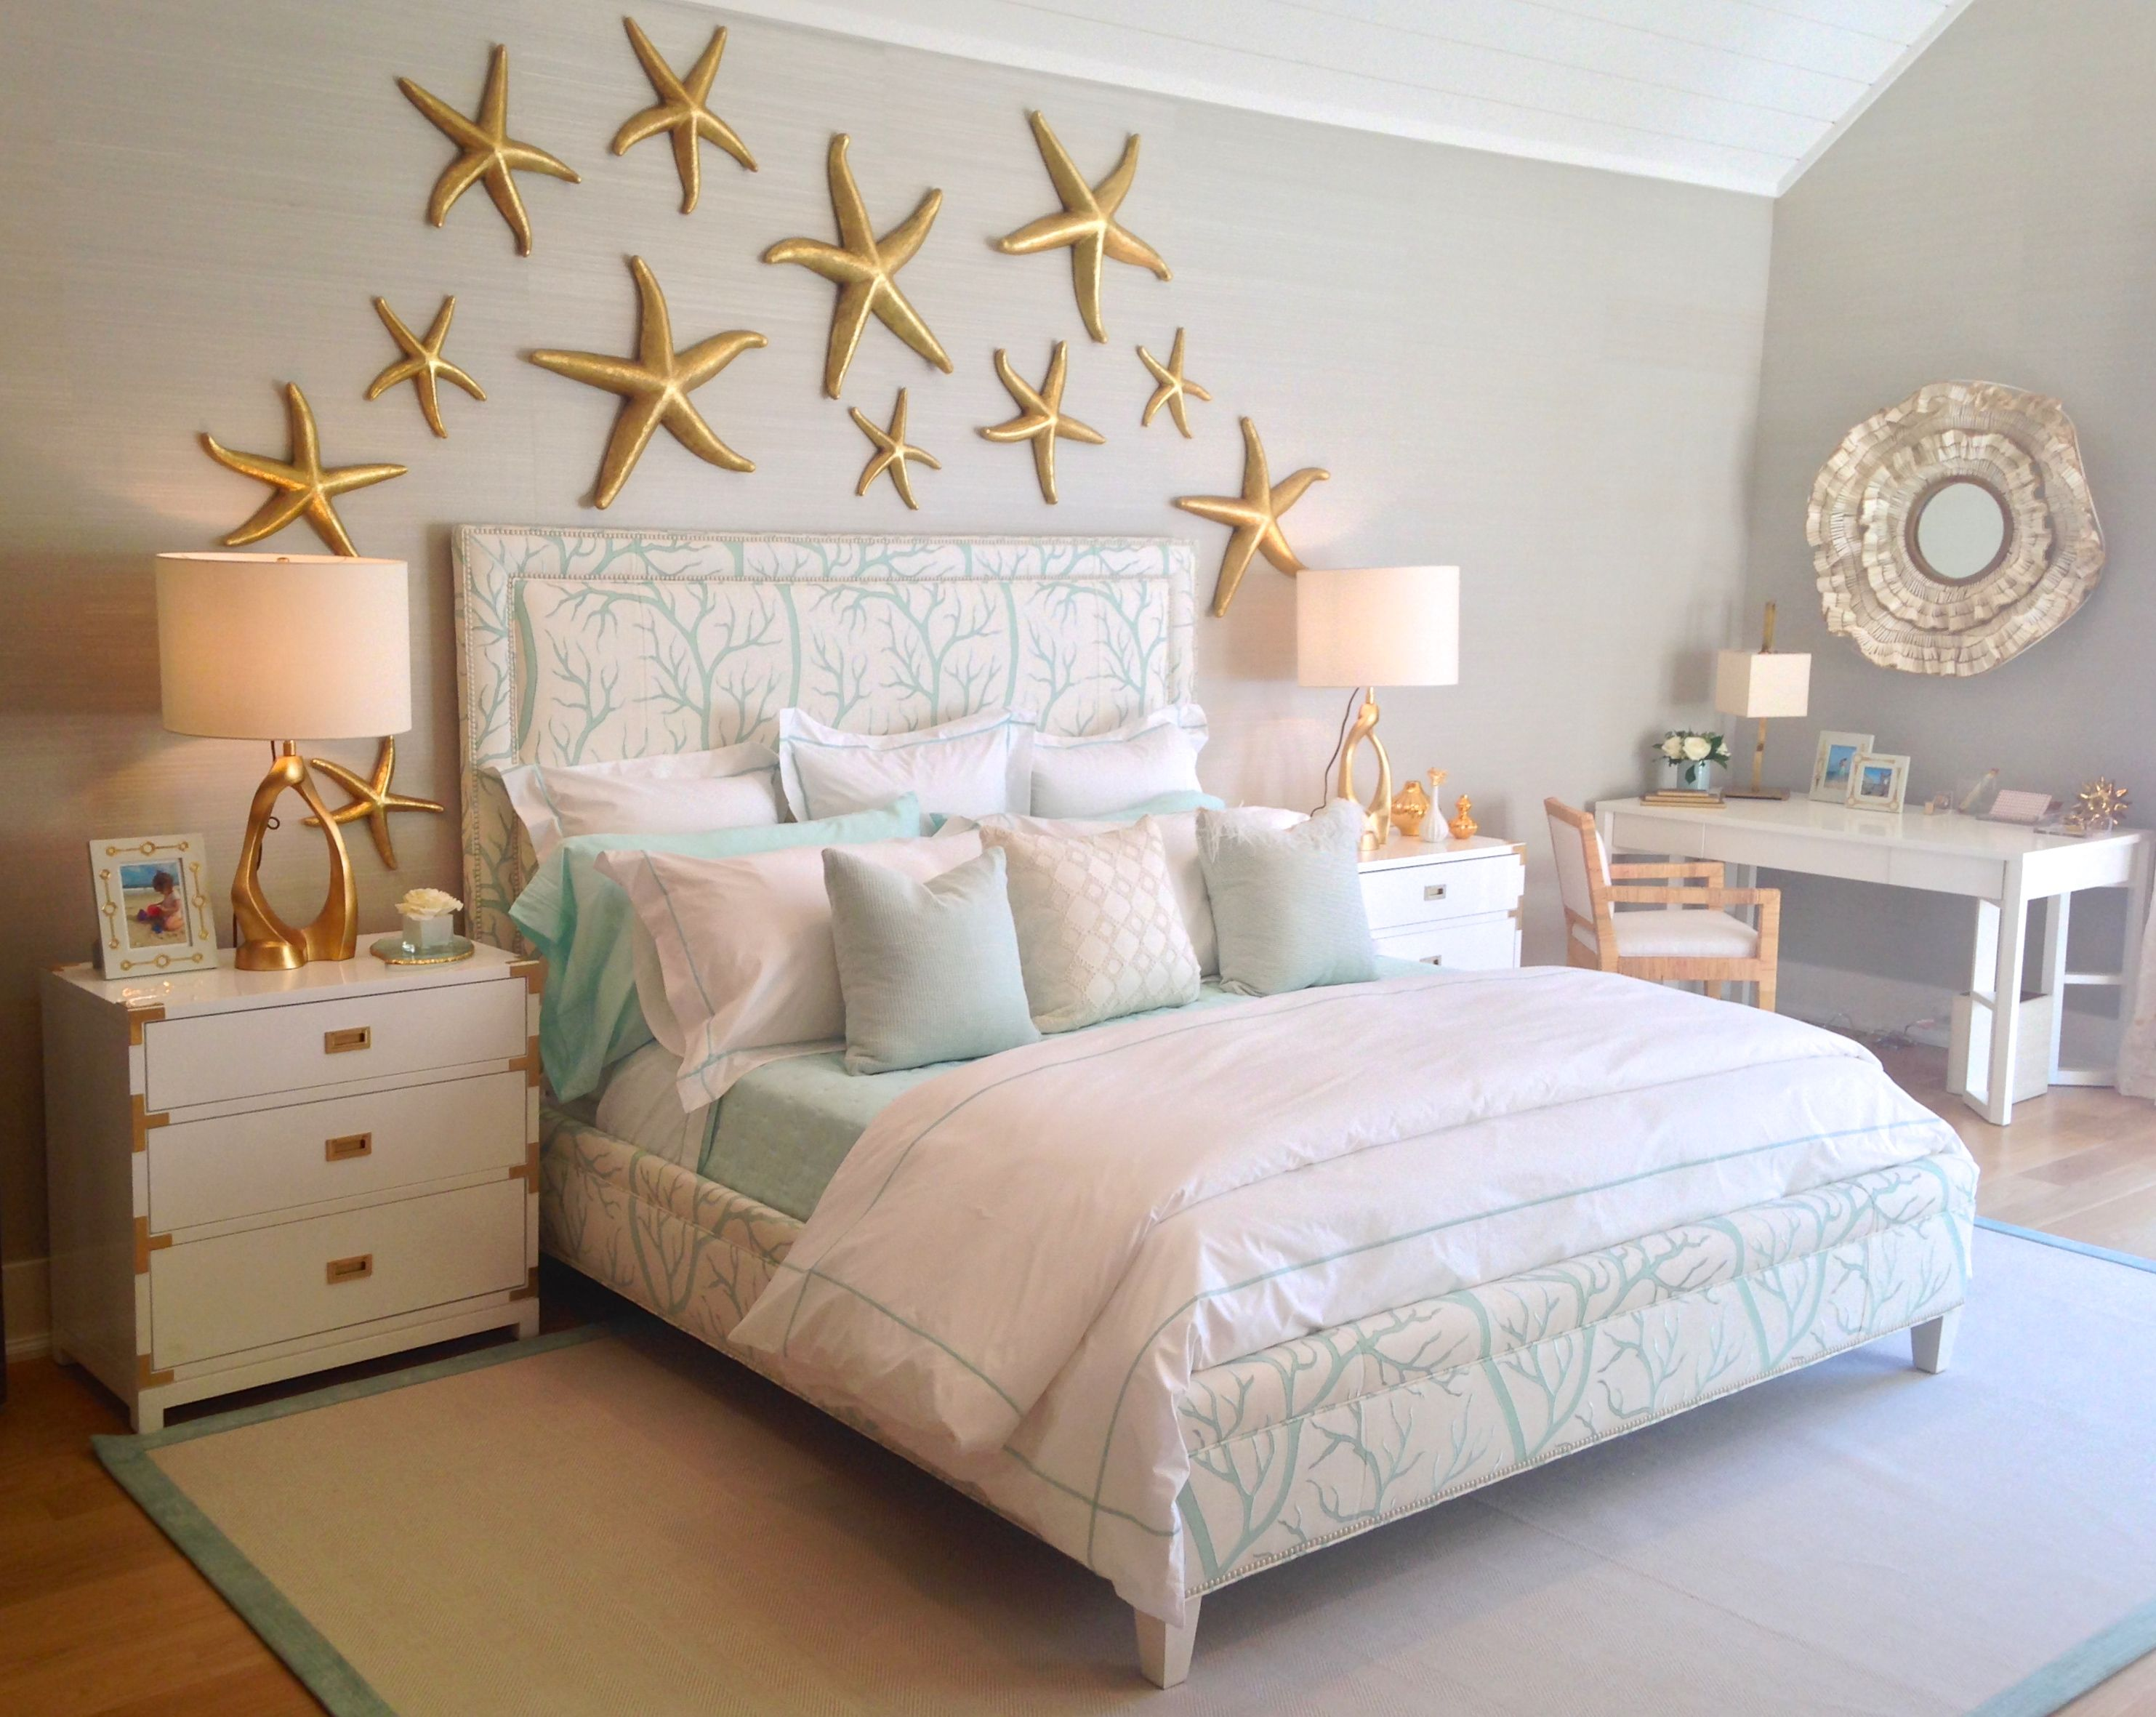 15 Best Images About Turquoise Room Decorations | Bedroom ...